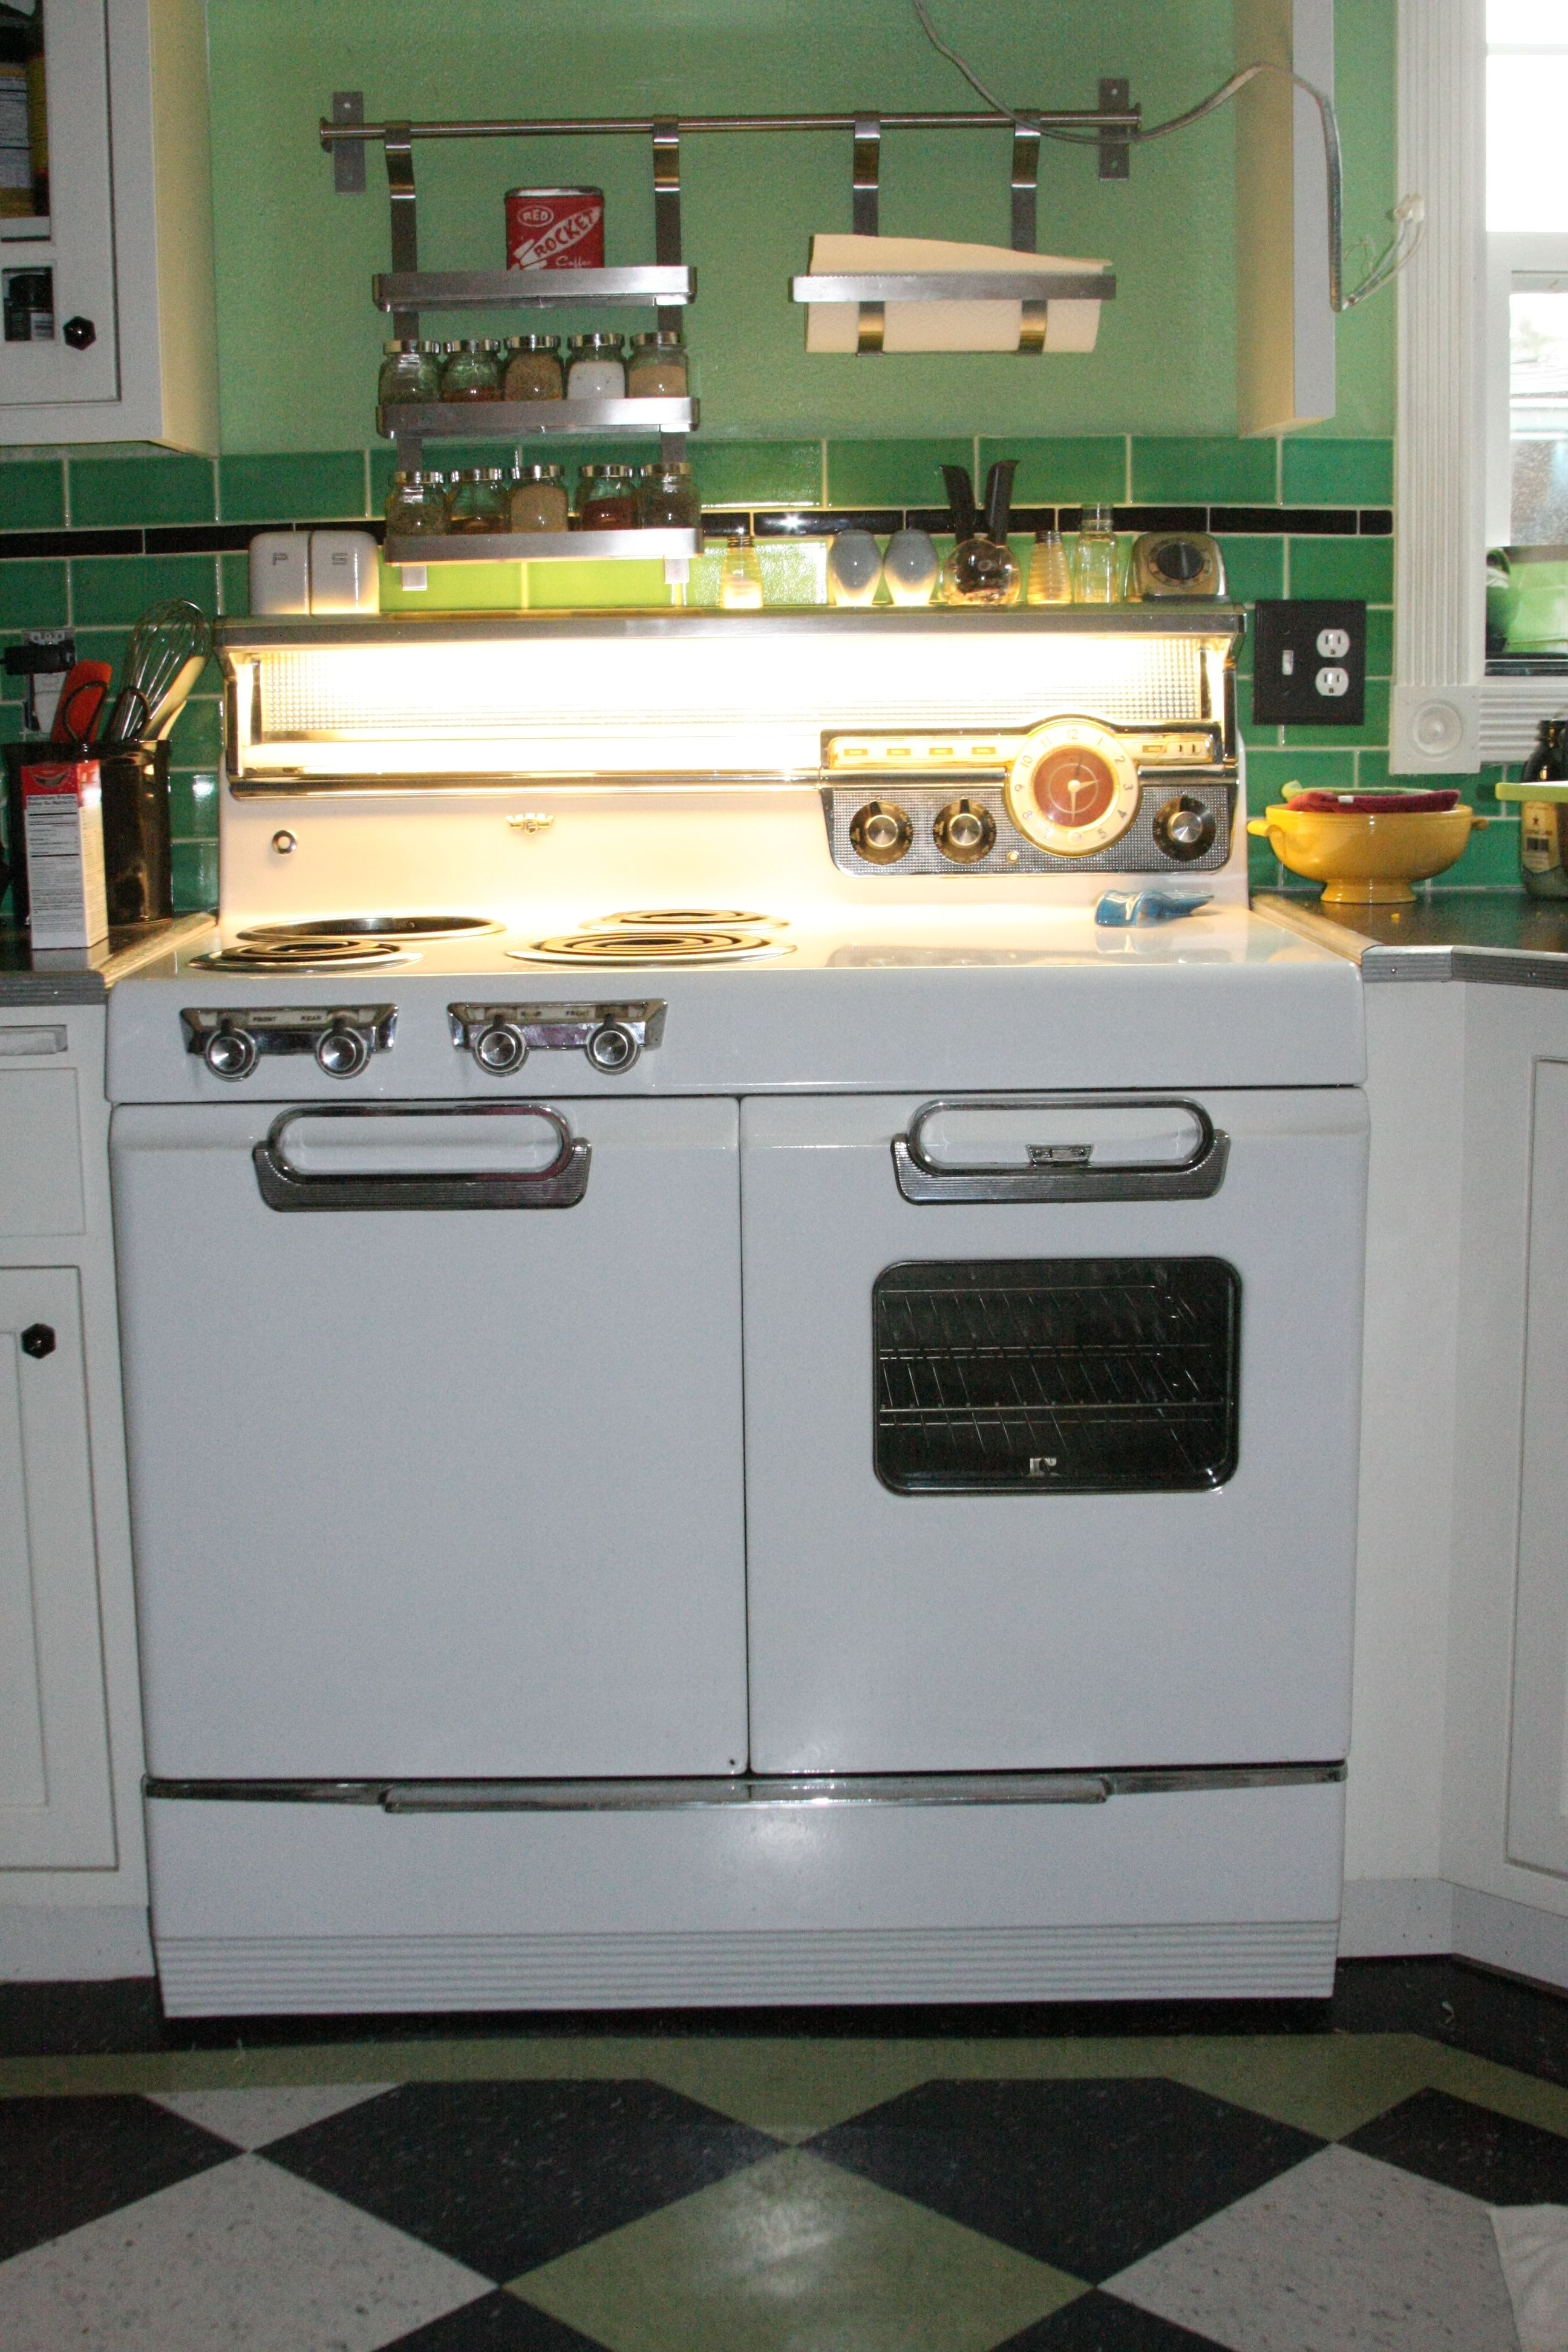 Of Vintage Stoves Refrigerators And Large